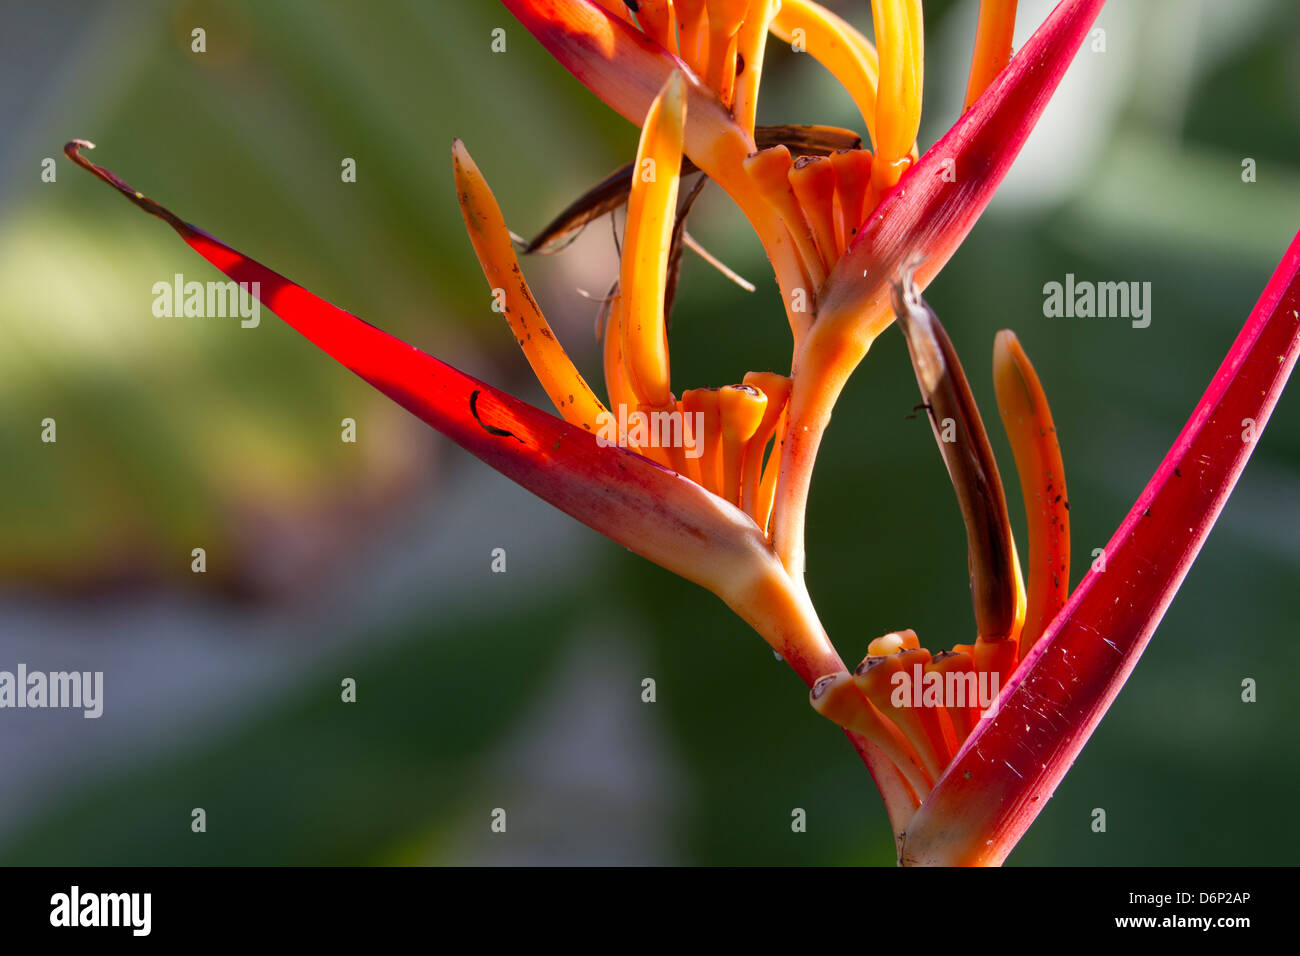 Heliconia or Lobster Claw, closeup 2 - Stock Image